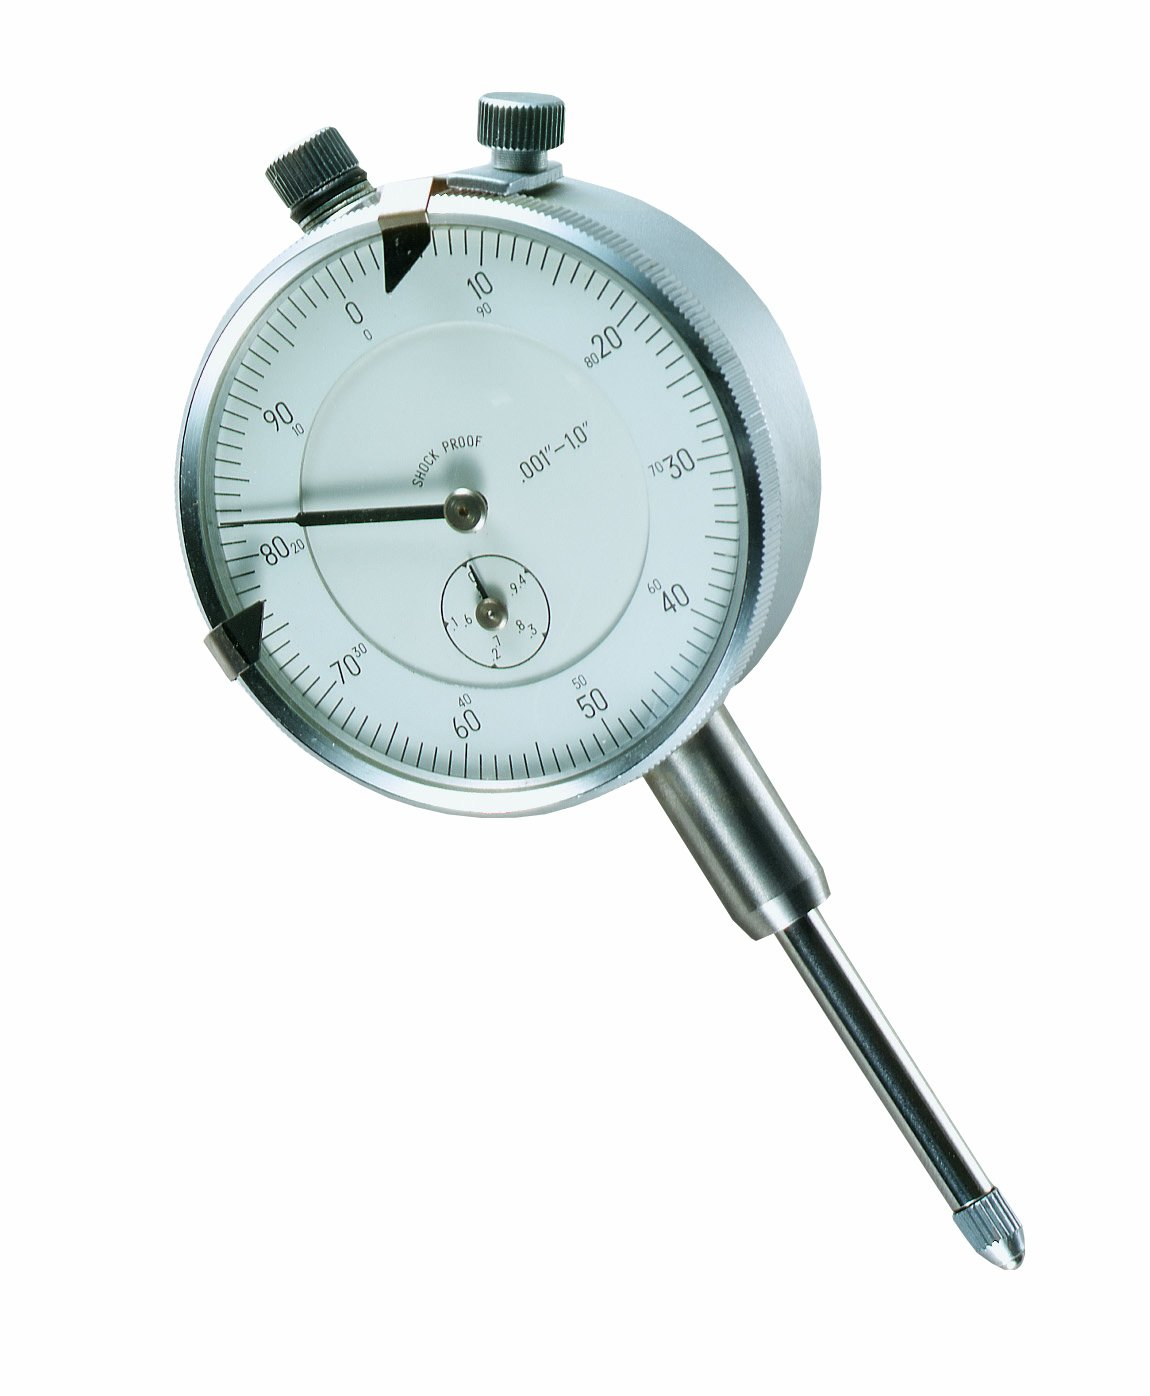 General Tools MG1780 UltraTest Plunger Dial Indicator